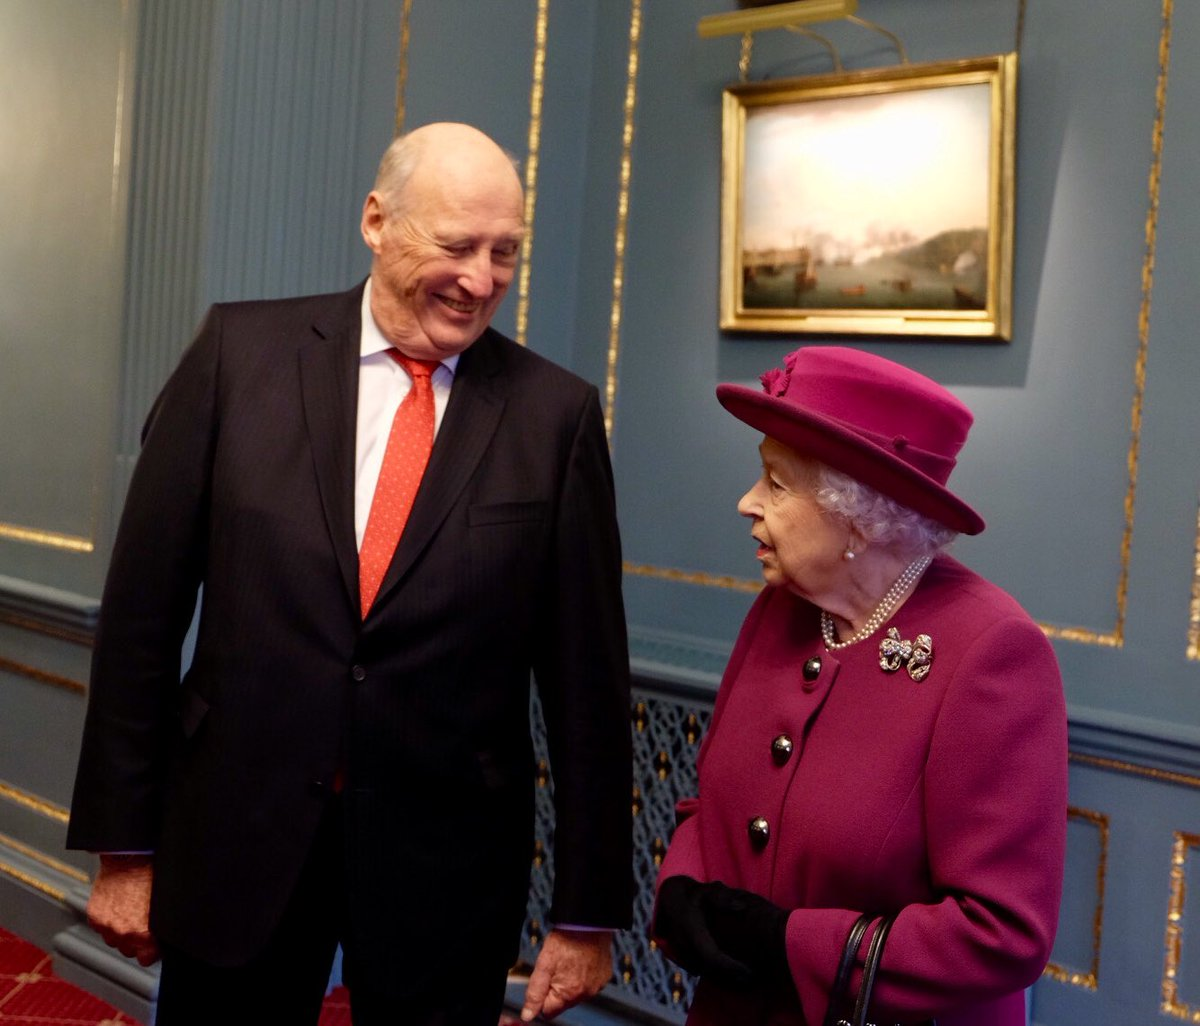 the Queen and the king of norway